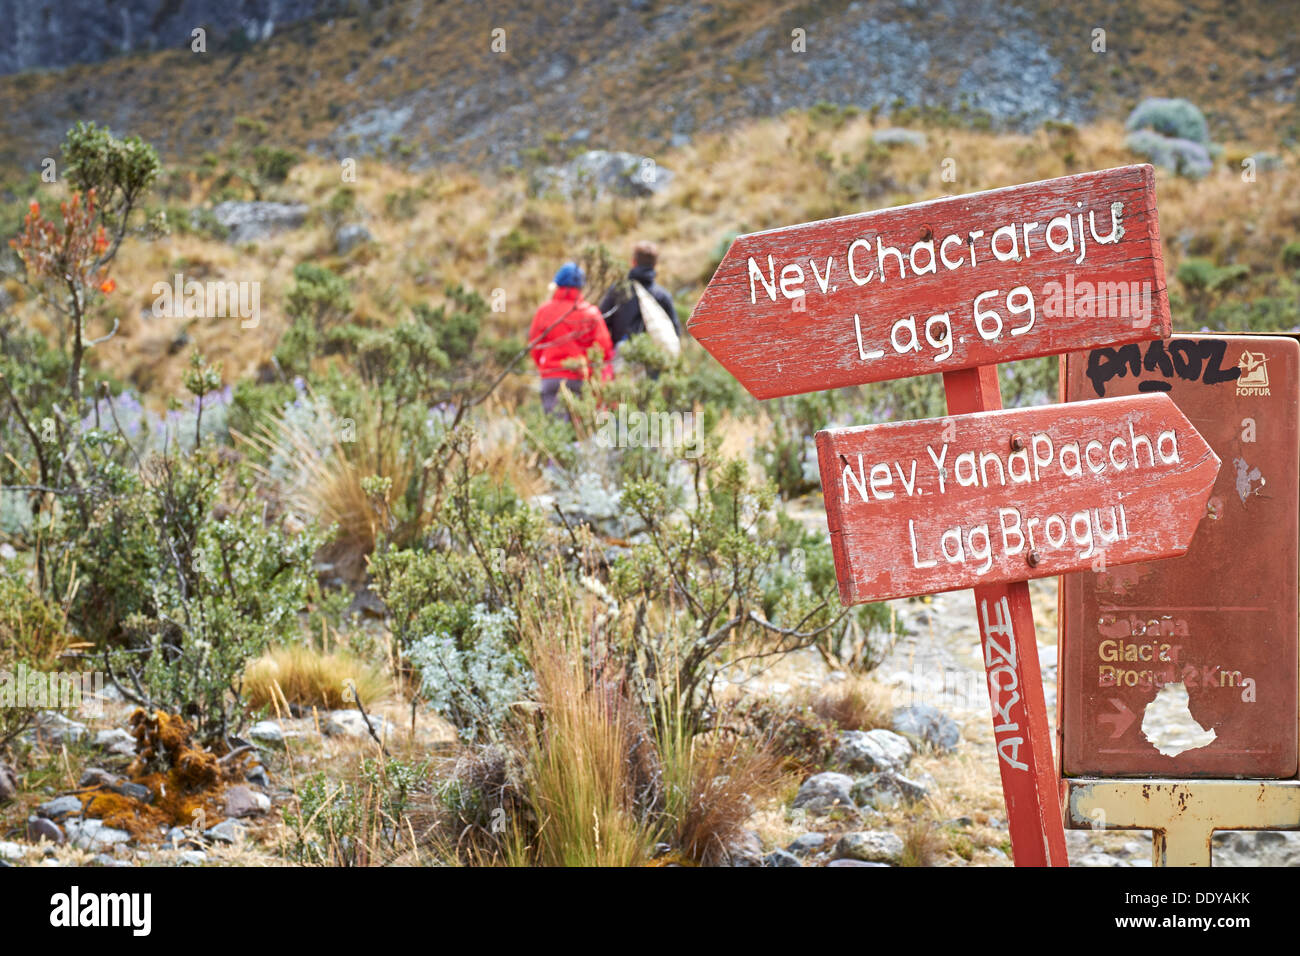 A couple walking on the Laguna 69 trek in the Huascarán National Park, Peruvian Andes. - Stock Image